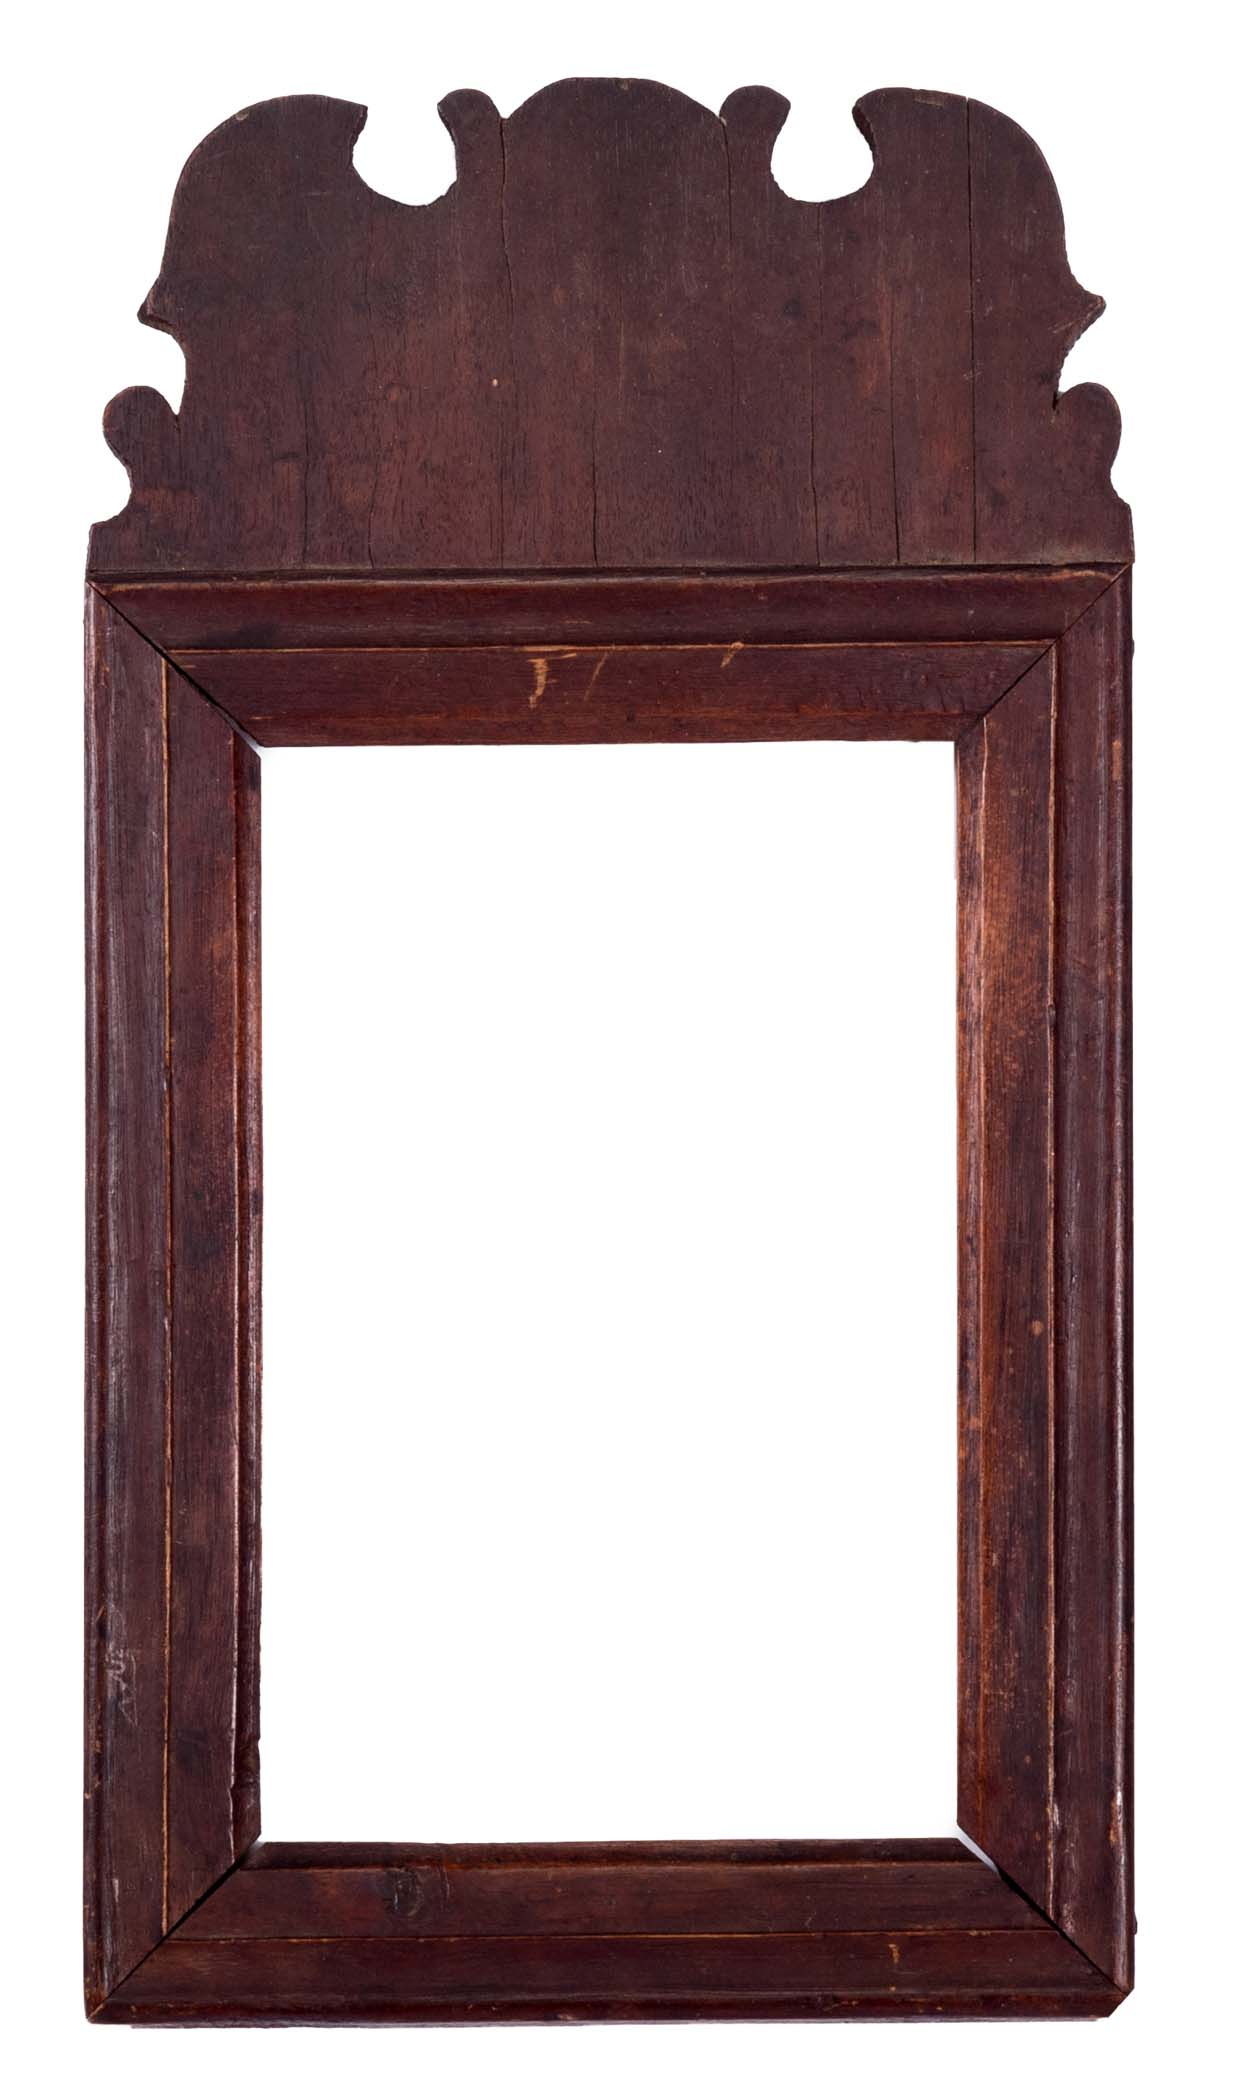 Queen Anne Mirror Frame With Shapely Crest, ...